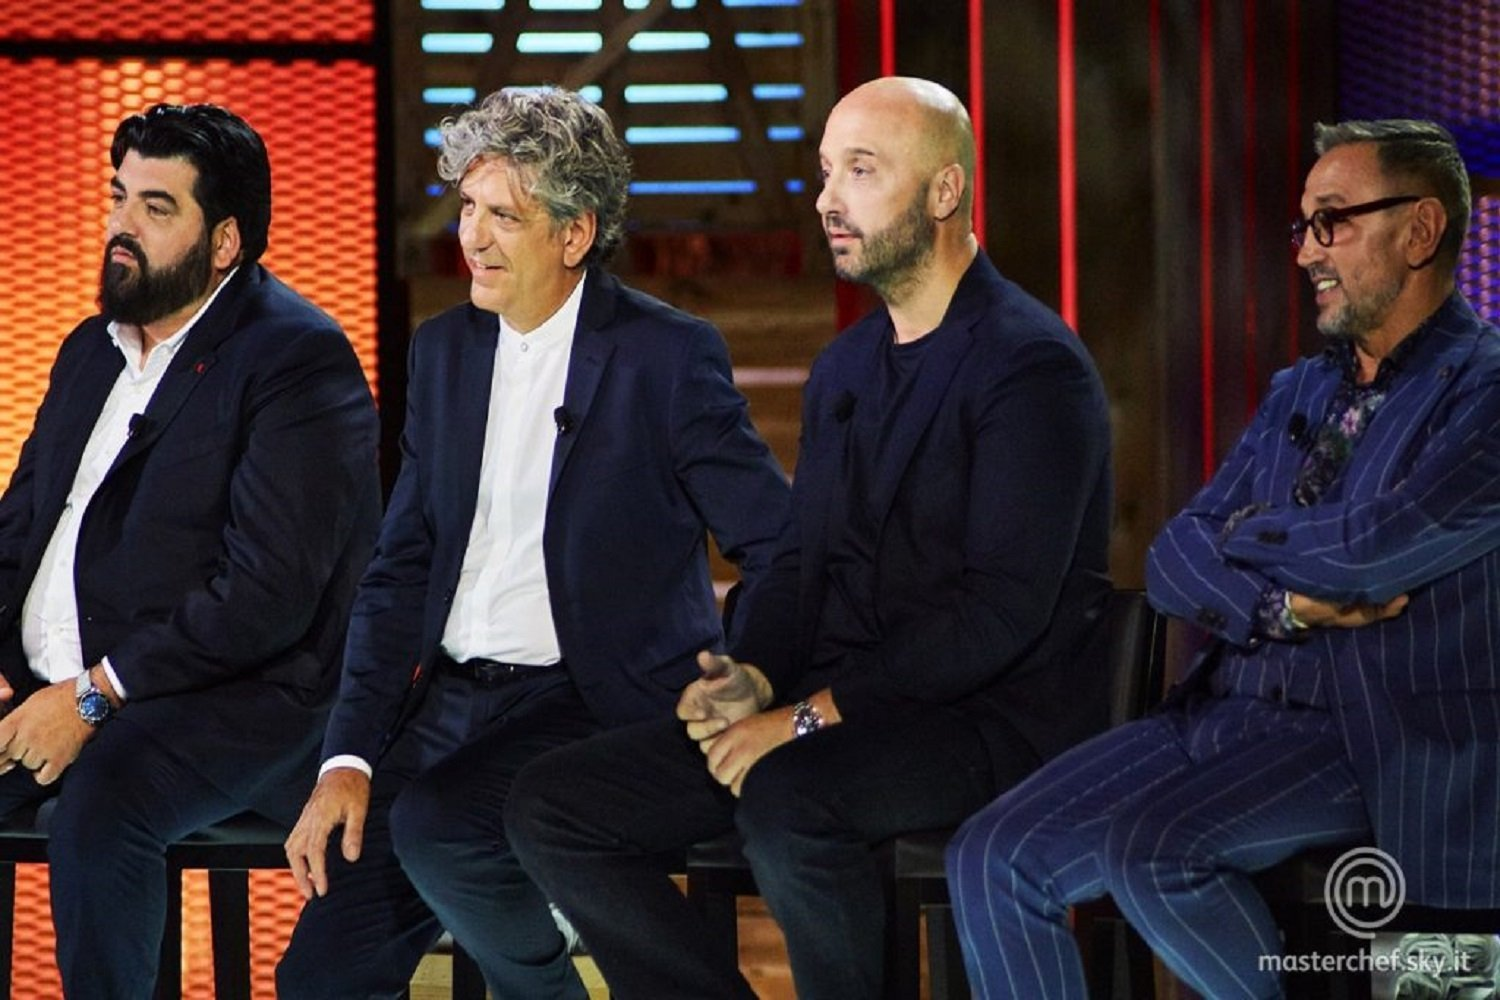 La top 5 dei concorrenti di Masterchef